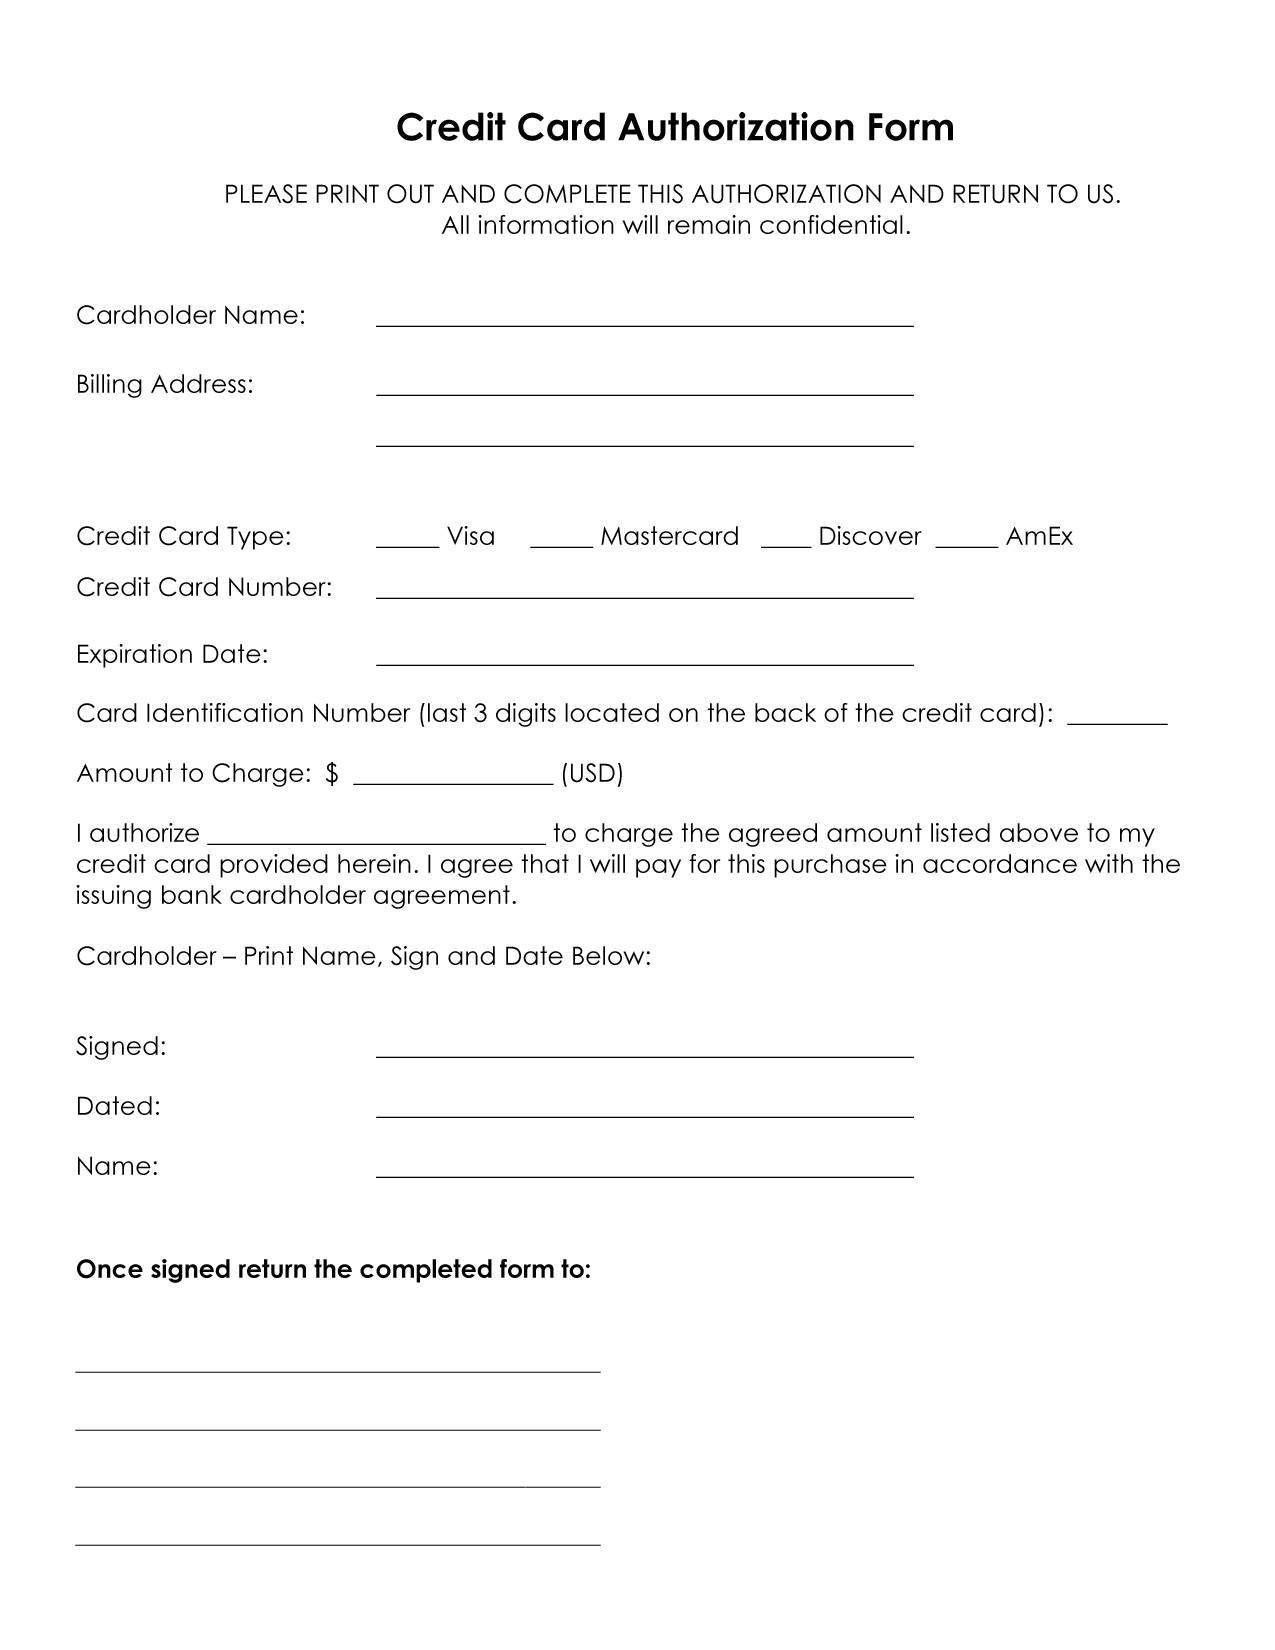 Credit Card form Template Authorization for Credit Card Use Free forms Download